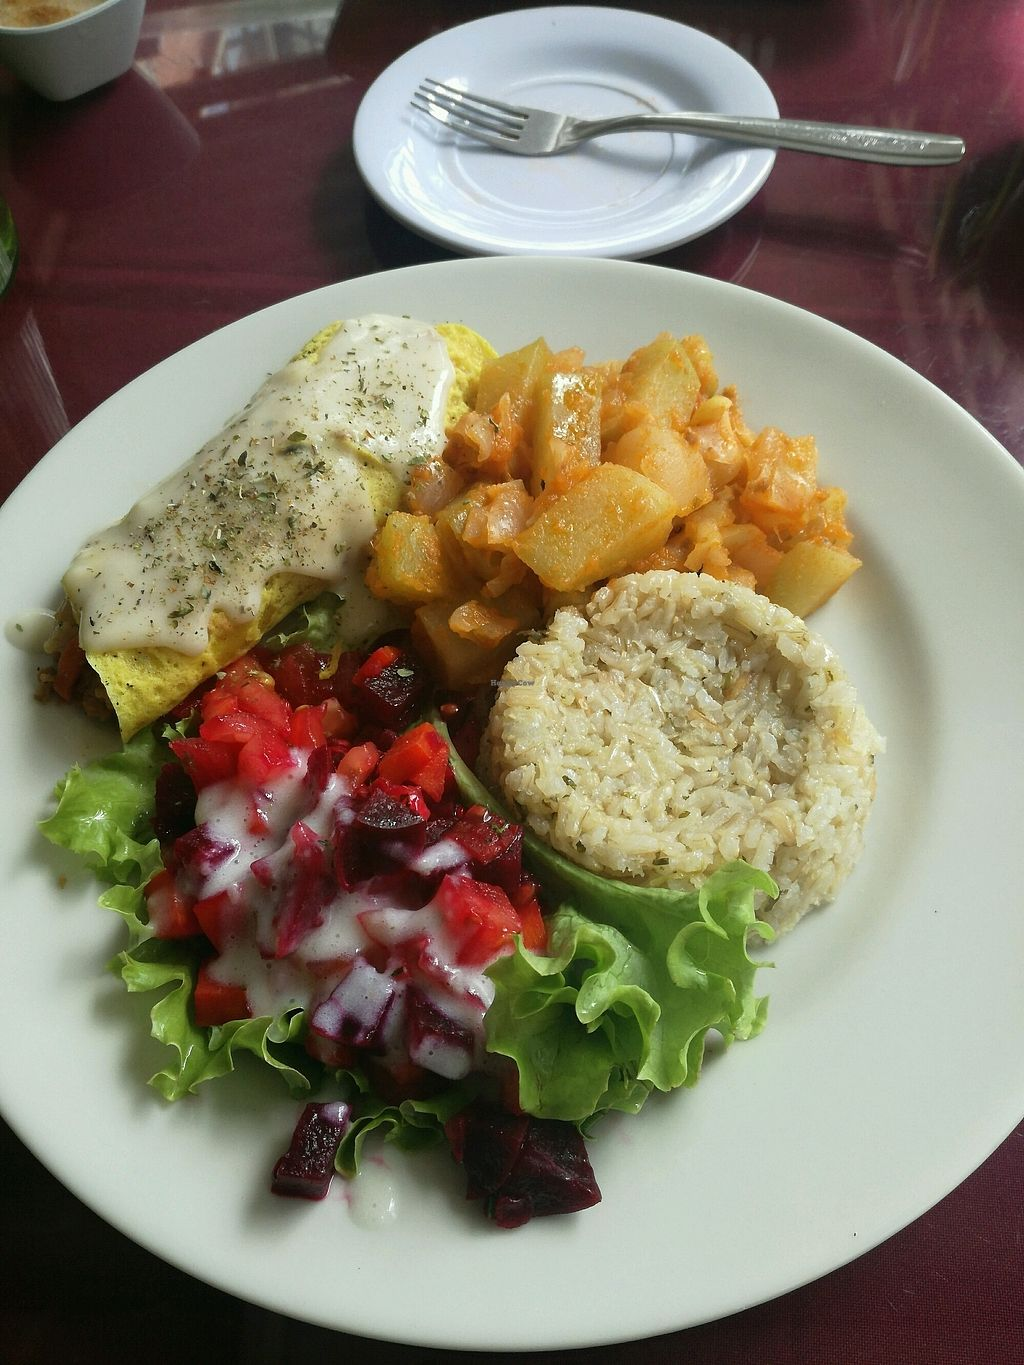 """Photo of Flor de Loto  by <a href=""""/members/profile/CataOspinaEspitia"""">CataOspinaEspitia</a> <br/>lunch at Flor de loto <br/> January 15, 2018  - <a href='/contact/abuse/image/46551/346972'>Report</a>"""